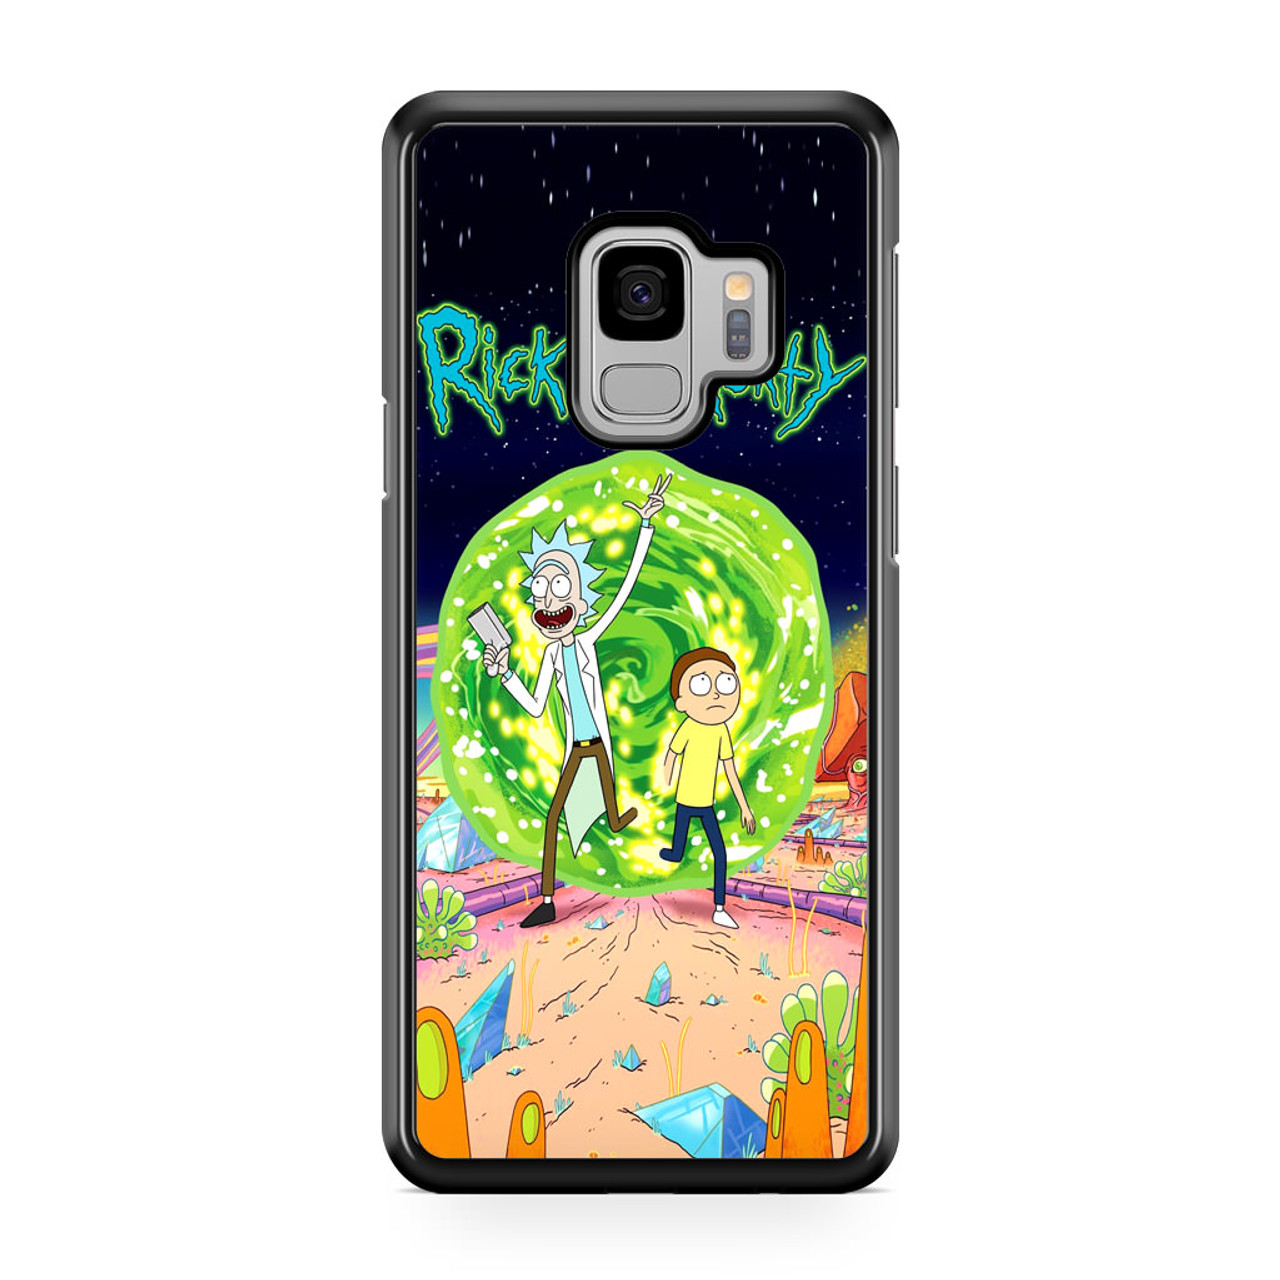 online store 3ca8f 2ad8e Rick and Morty Poster Samsung Galaxy S9 Case